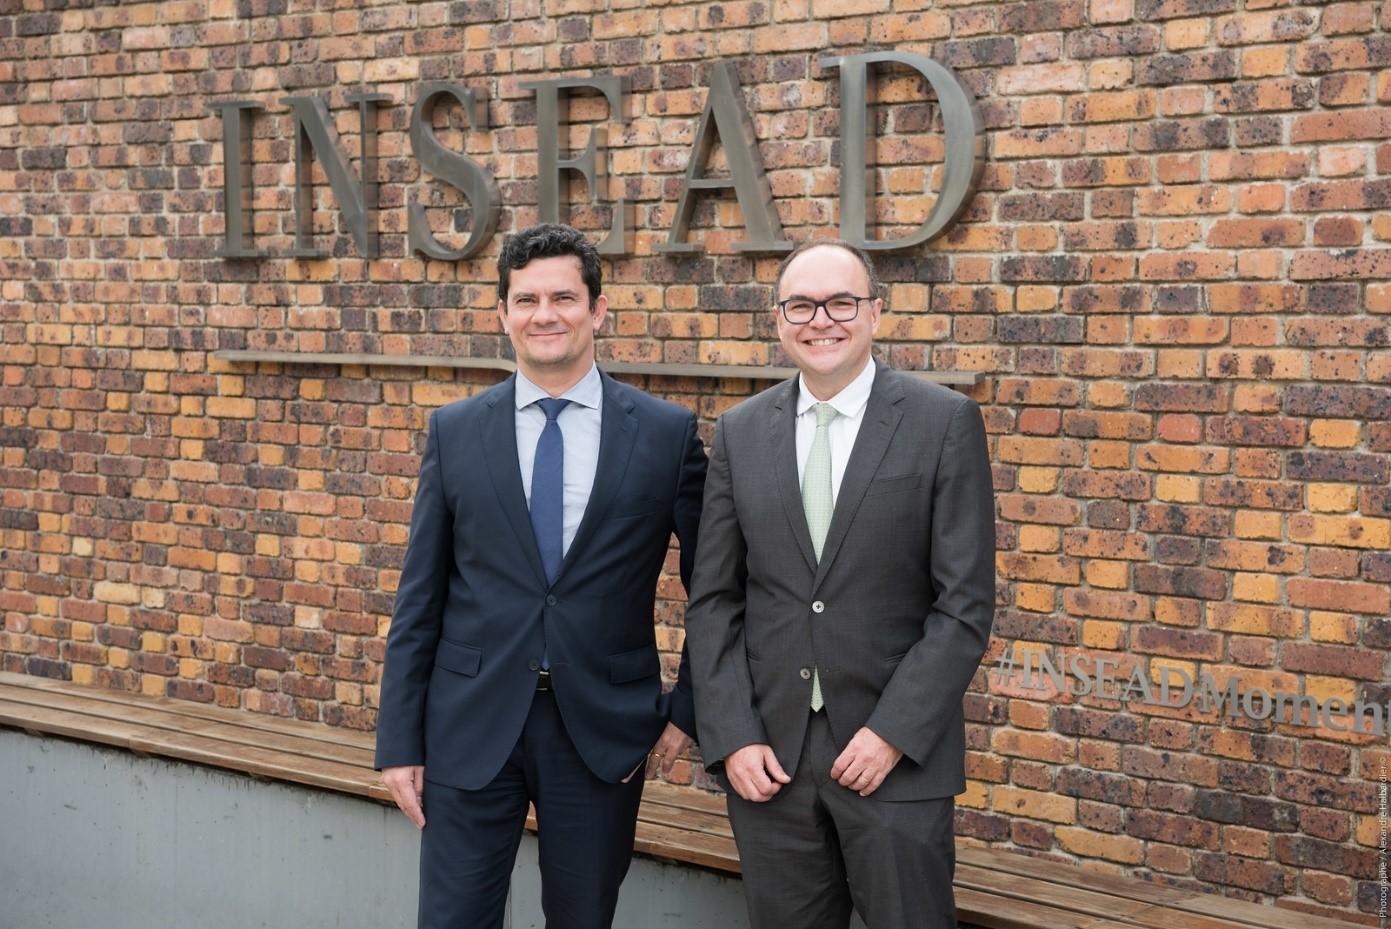 INSEAD Welcomes Brazil's Federal Judge Sérgio Moro | INSEAD Felipe Monteiro Insead Photos